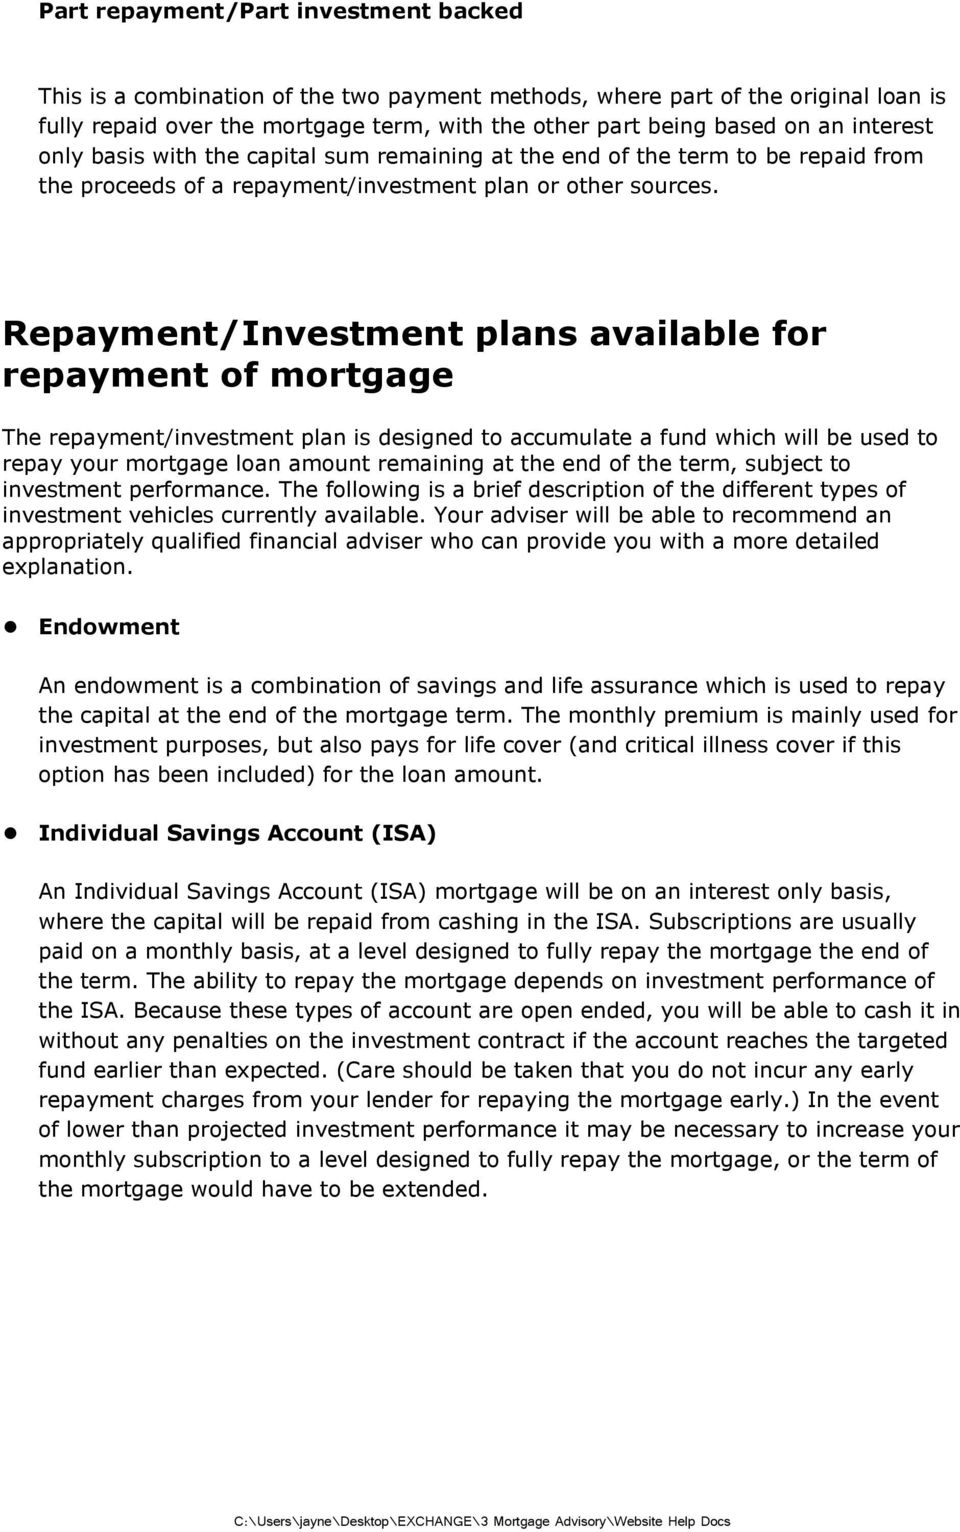 Repayment/Investment plans available for repayment of mortgage The repayment/investment plan is designed to accumulate a fund which will be used to repay your mortgage loan amount remaining at the